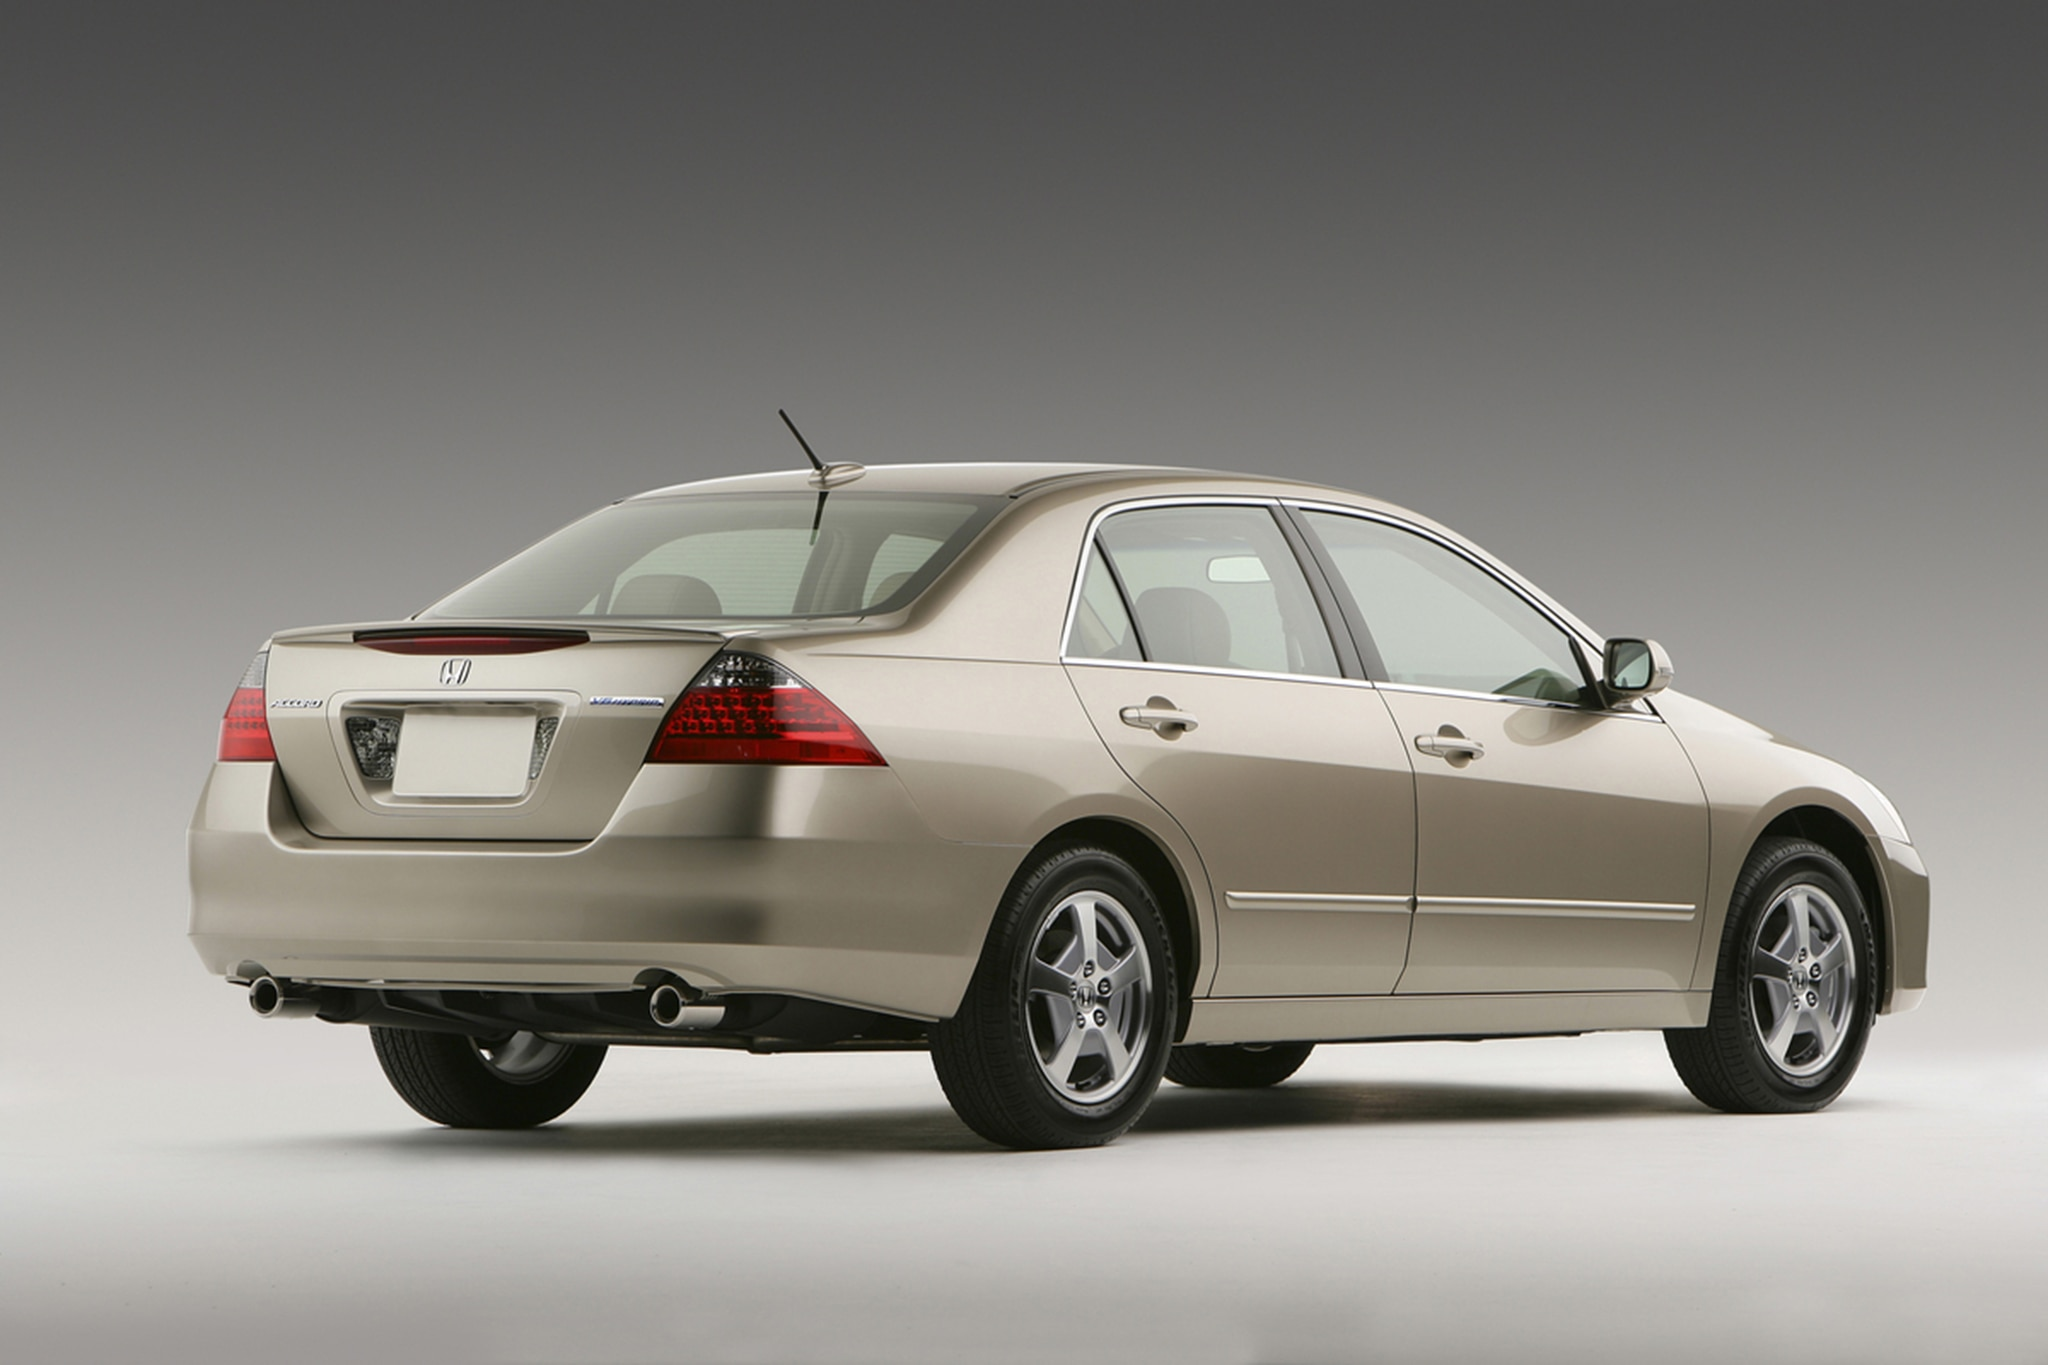 2006 Honda Accord Hybrid 7th generation